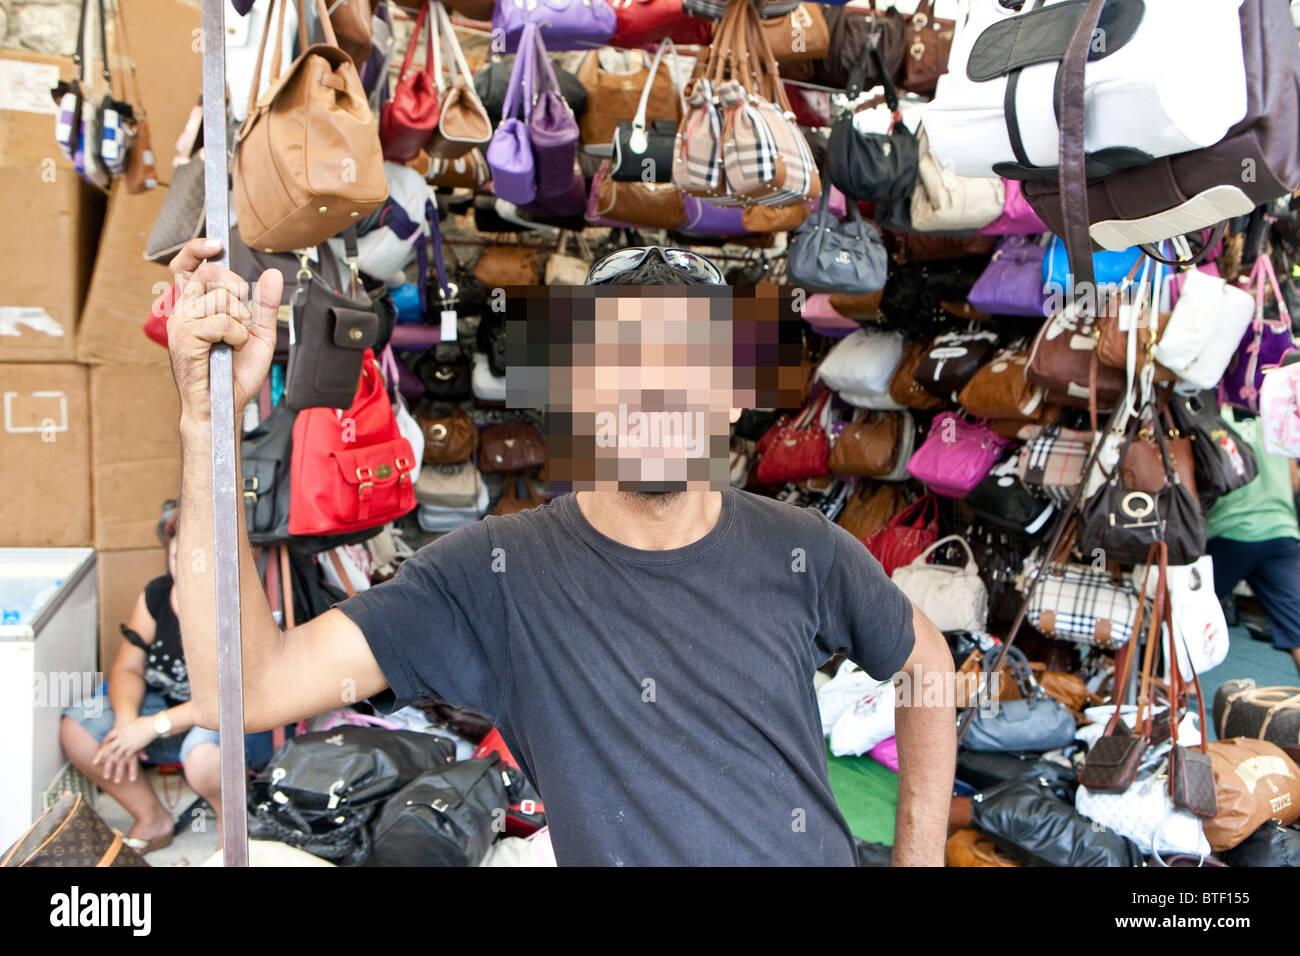 a9480450d Counterfeit and fake goods on sale to tourists in a Turkish market - Stock  Image